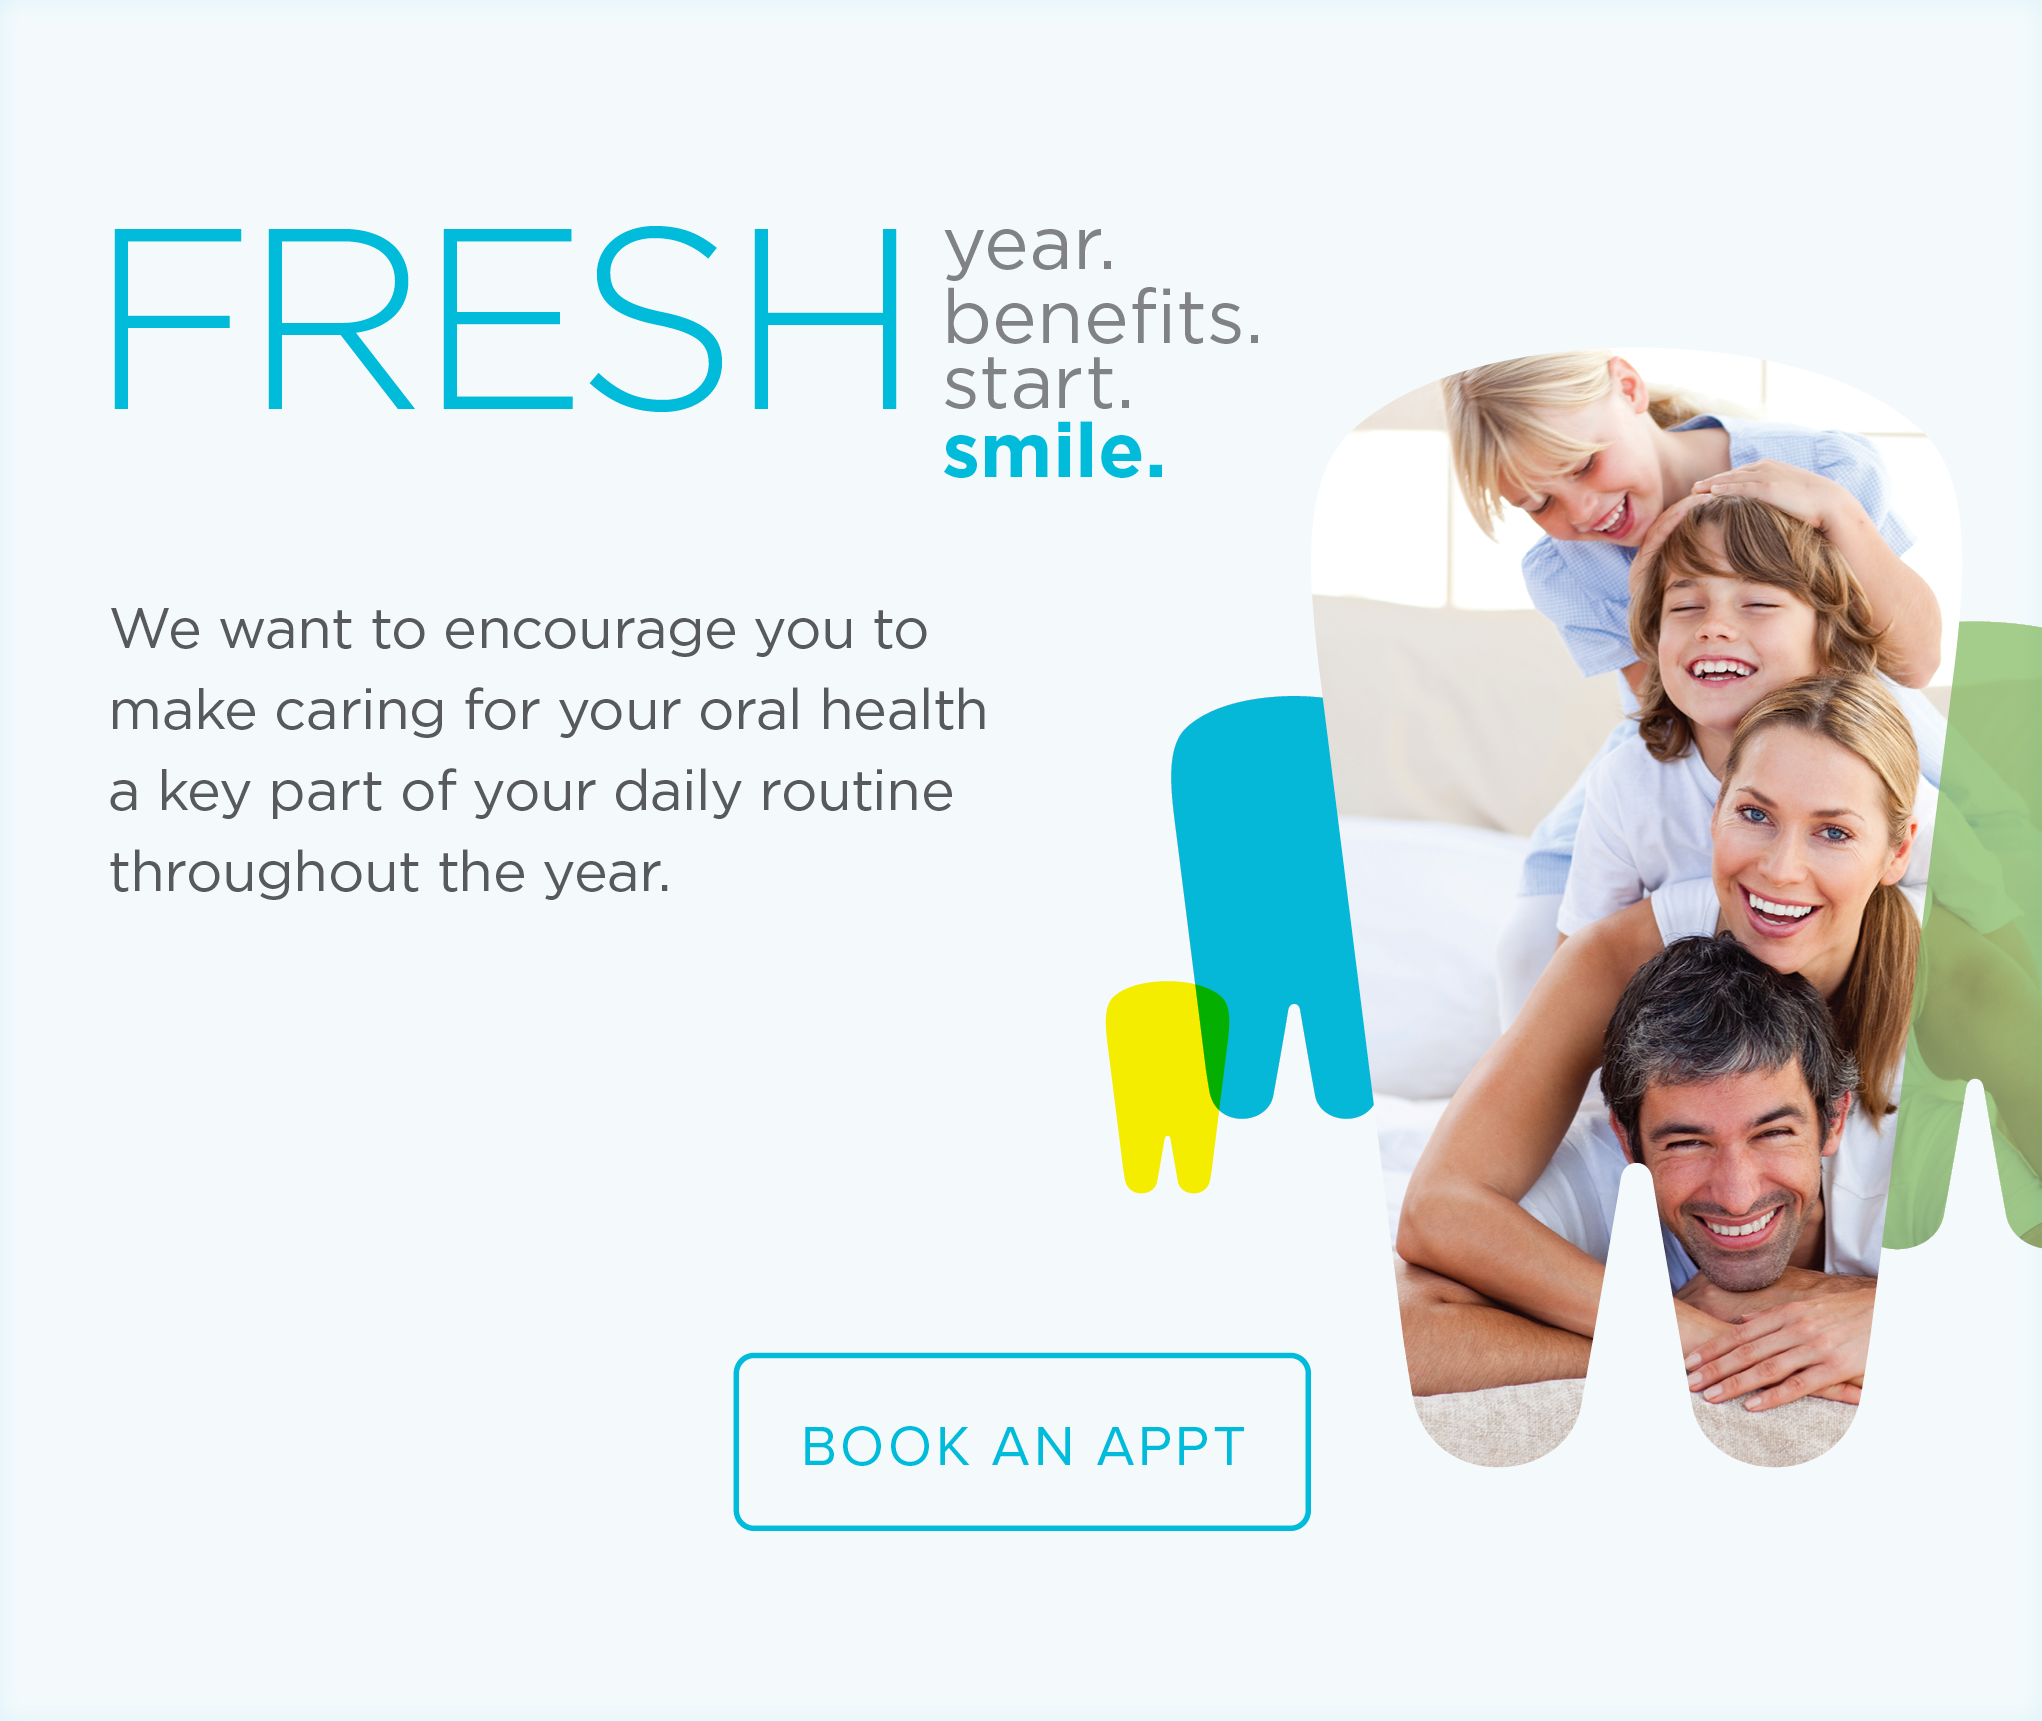 Diamond Dental Group and Orthodontics - Make the Most of Your Benefits